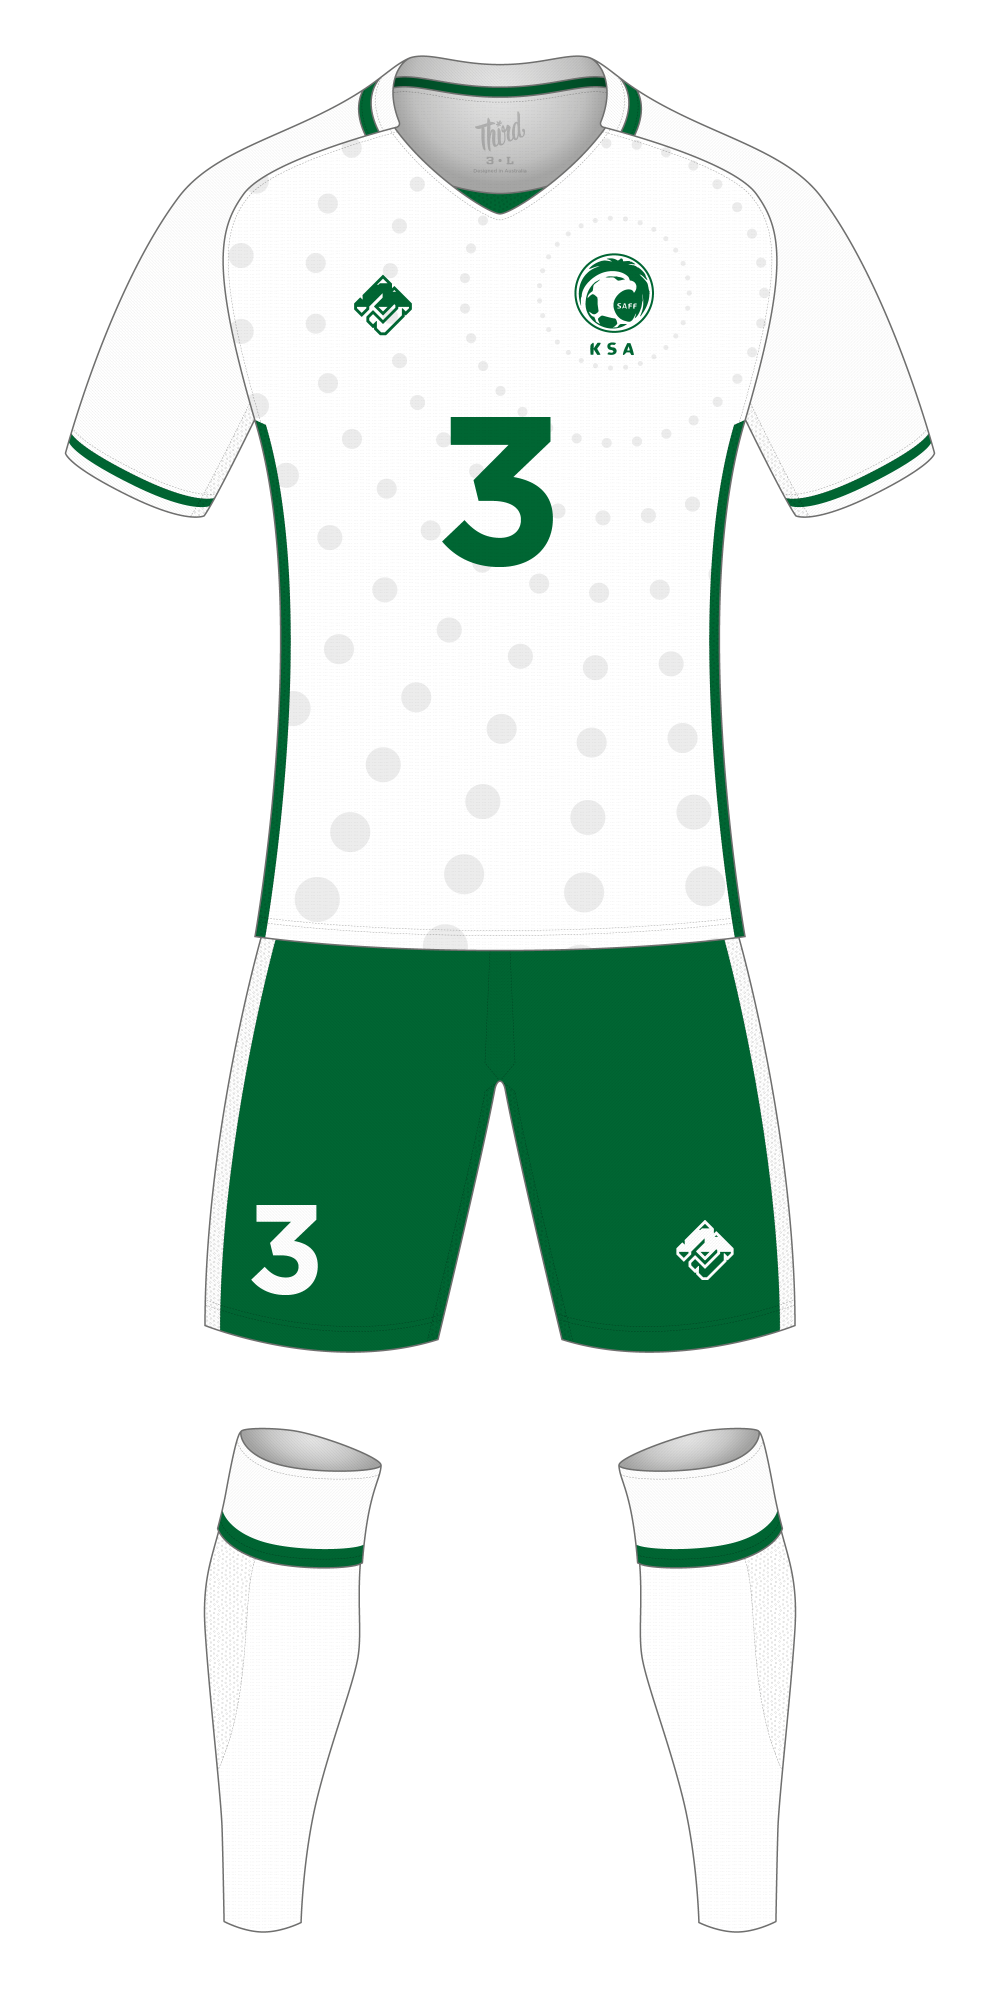 Saudi Arabia World Cup 2018 concept